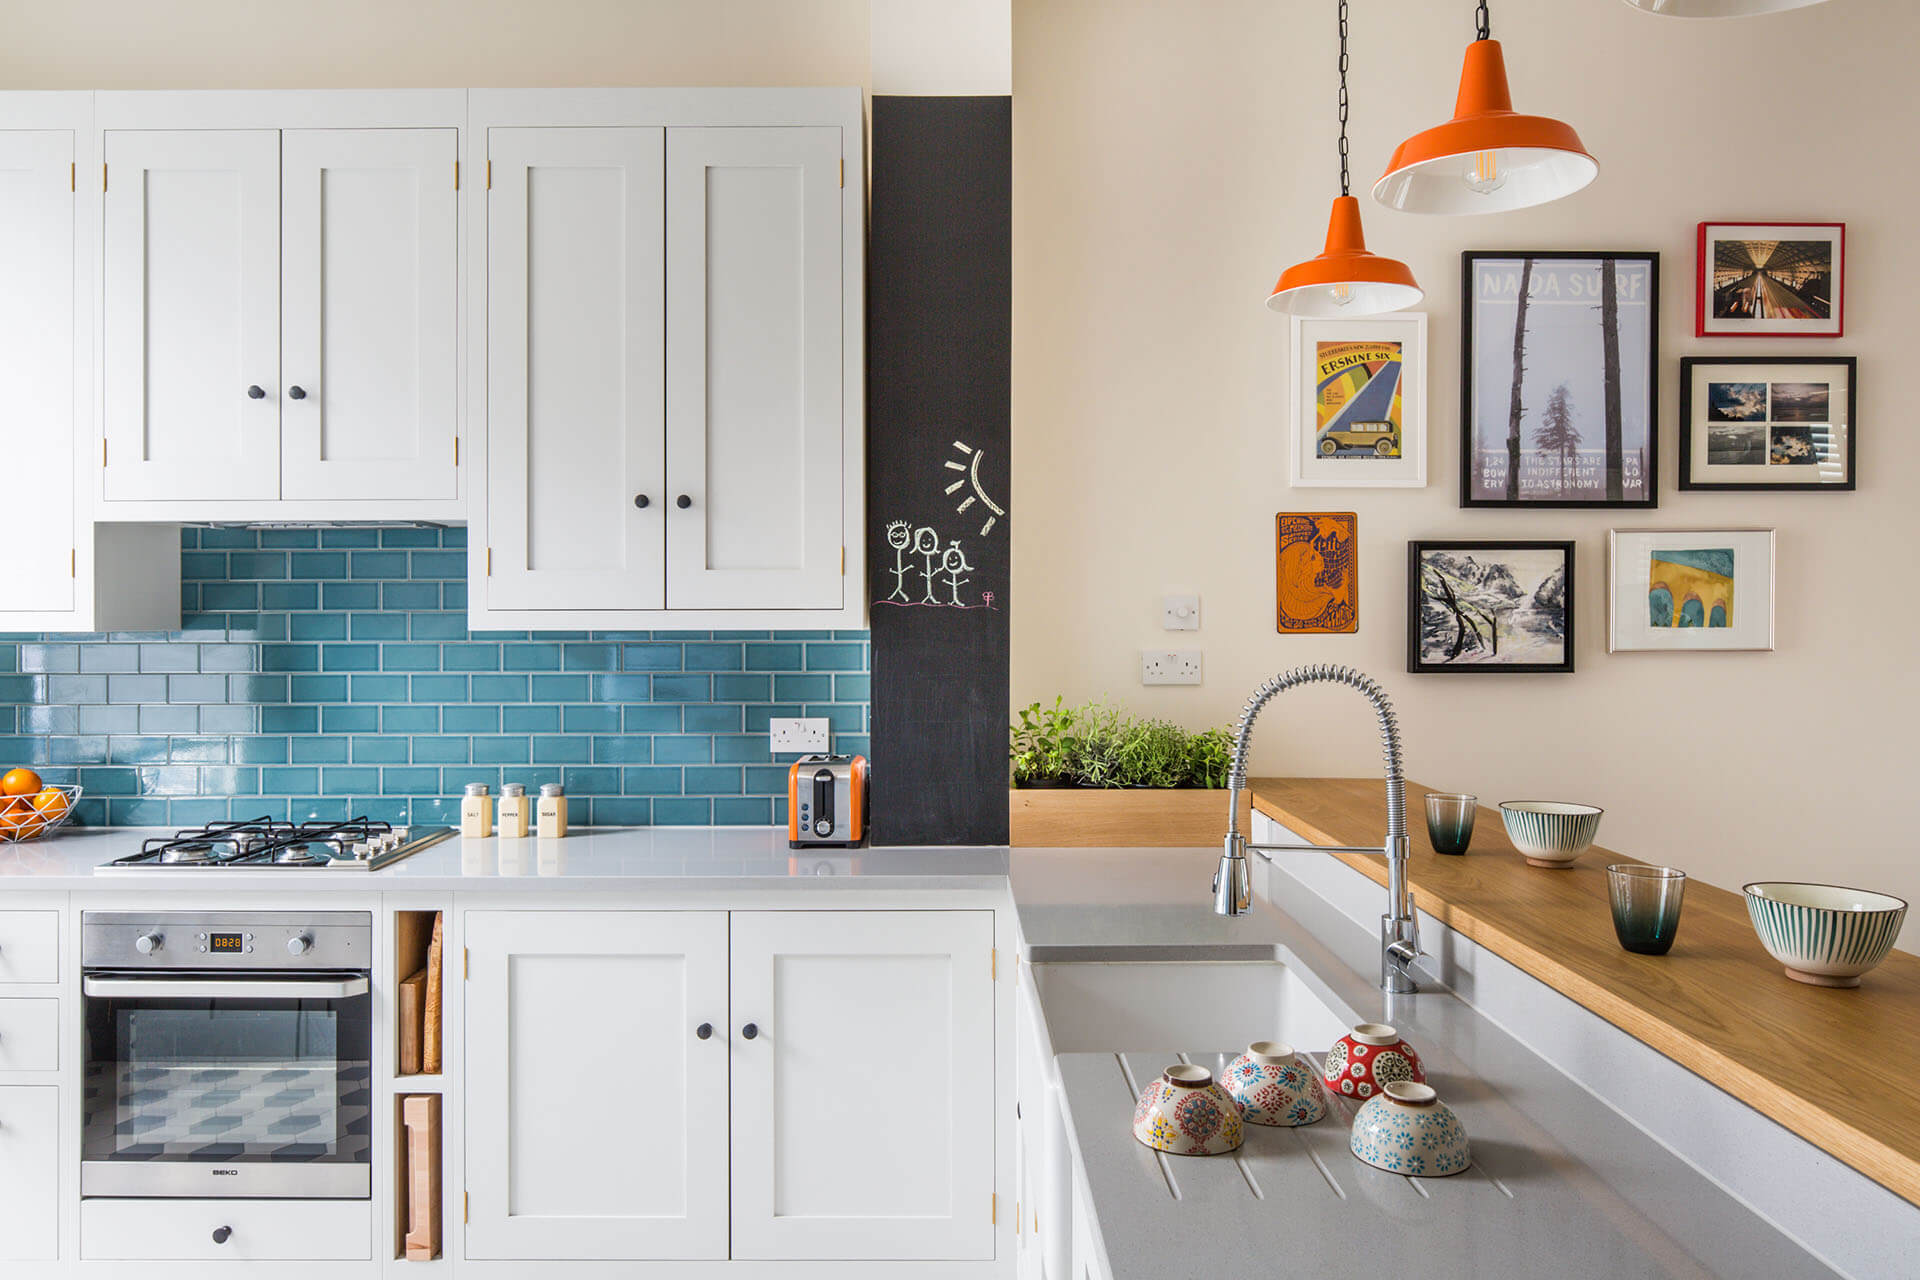 Quirky retro Shaker kitchen with Mullan Hex Pendant lighting, Quartz worktop and Shaws Classic Belfast sink